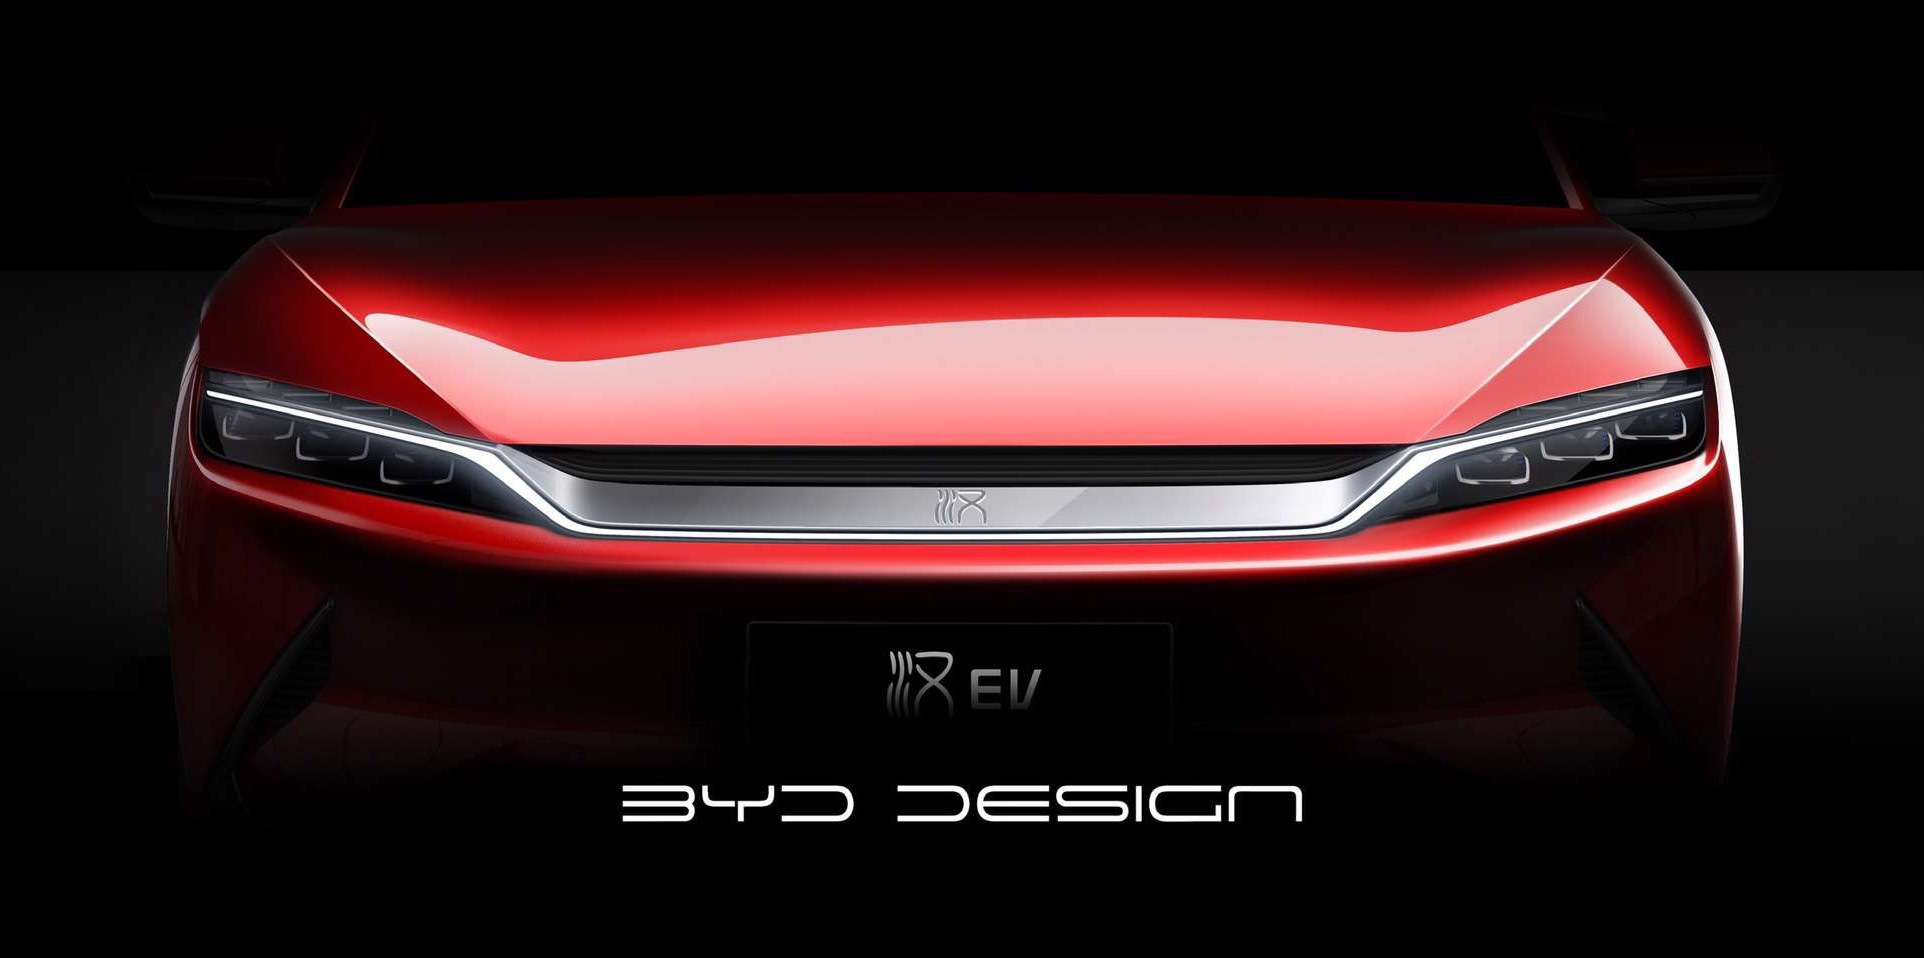 Chinese car manufacturer BYD will be unveiling the Han EV / PHEV at the Beijing International Automotive Exhibition 2020 (Auto China) on April 21-30, 2020.